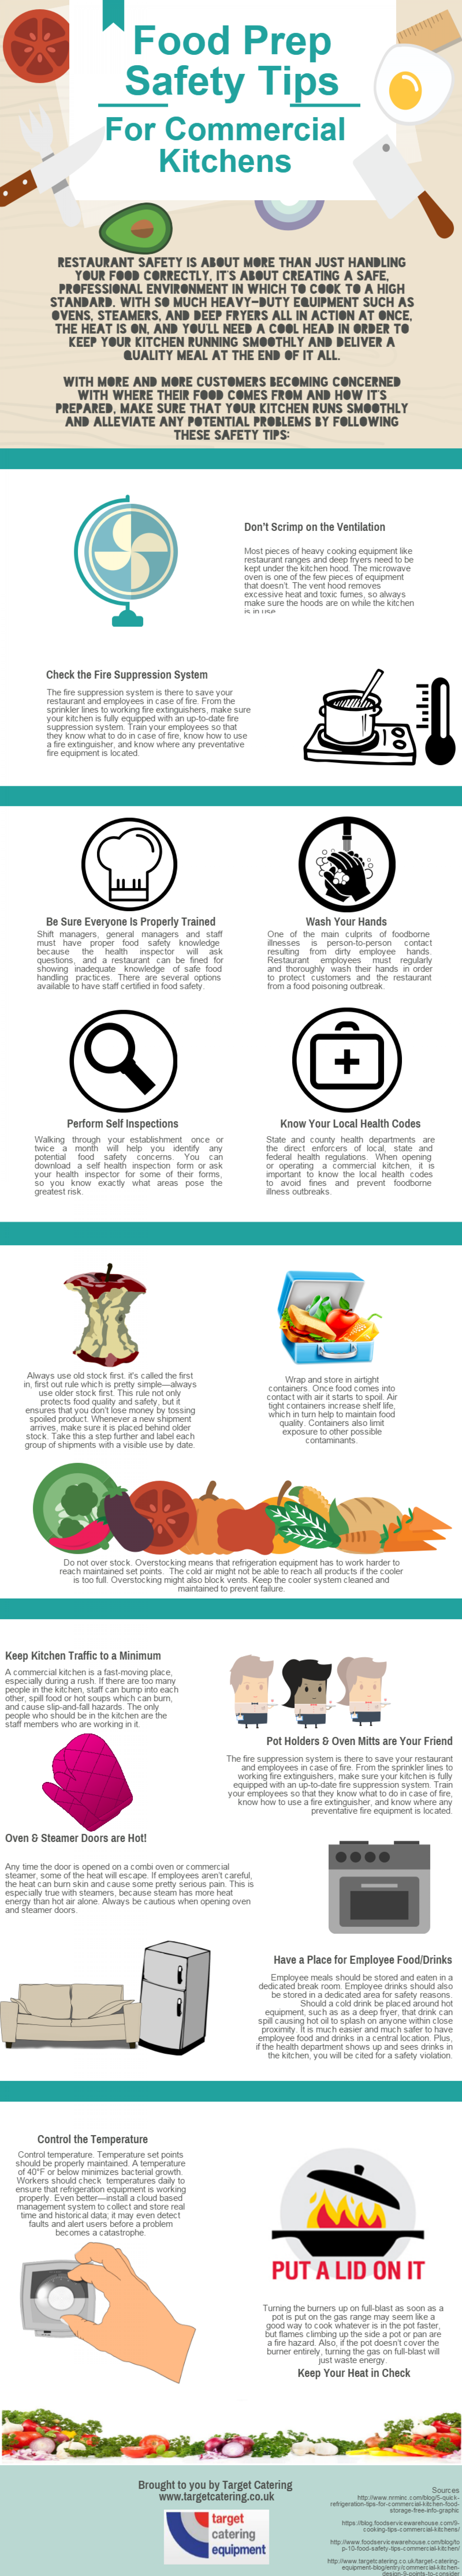 Food Prep Safety Tips For Commercial Kitchens | Visual.ly